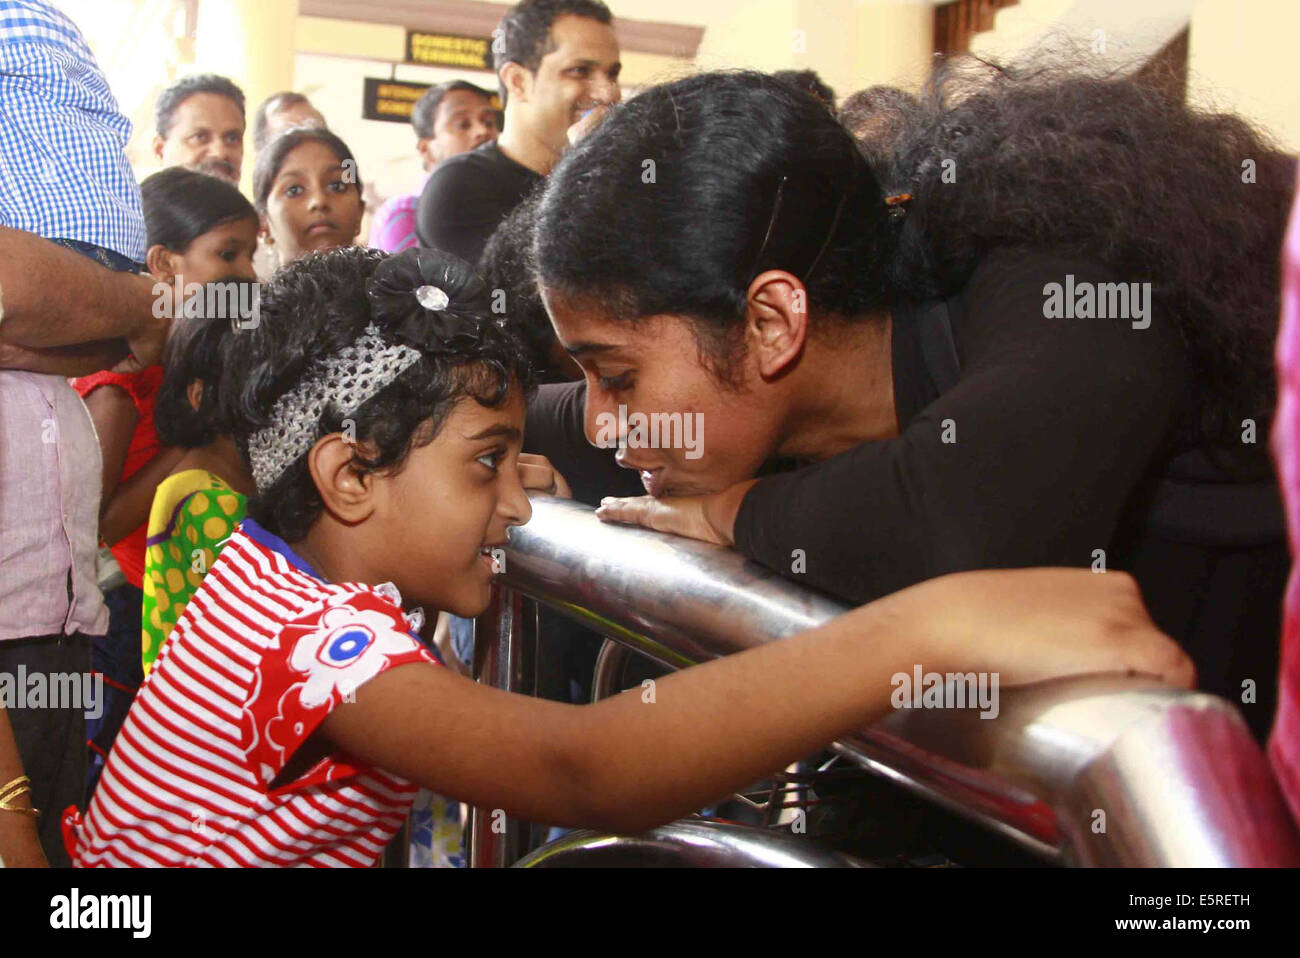 Kochi. 5th Aug, 2014. One of the 44 Indian nurses evacuated from war torn country Libya talks to her daughter on - Stock Image